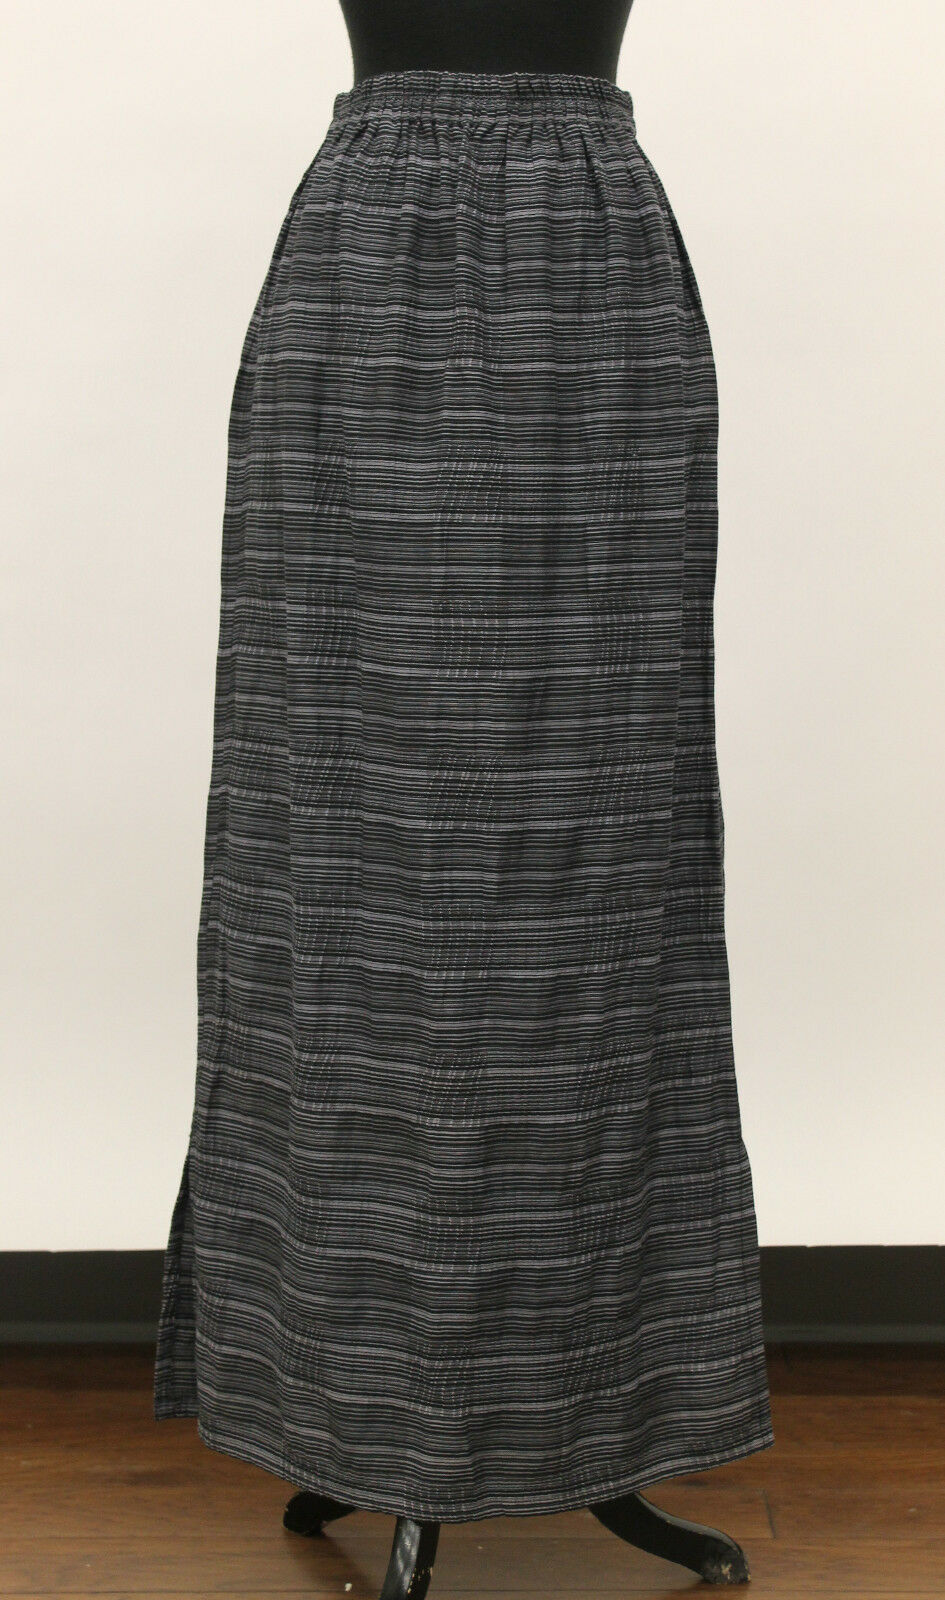 PRISA EURO COTTON VISCOSE PINSTRIPED SLIT LONG SKIRT GRY BLK Sz 1 US 12  195 NWT